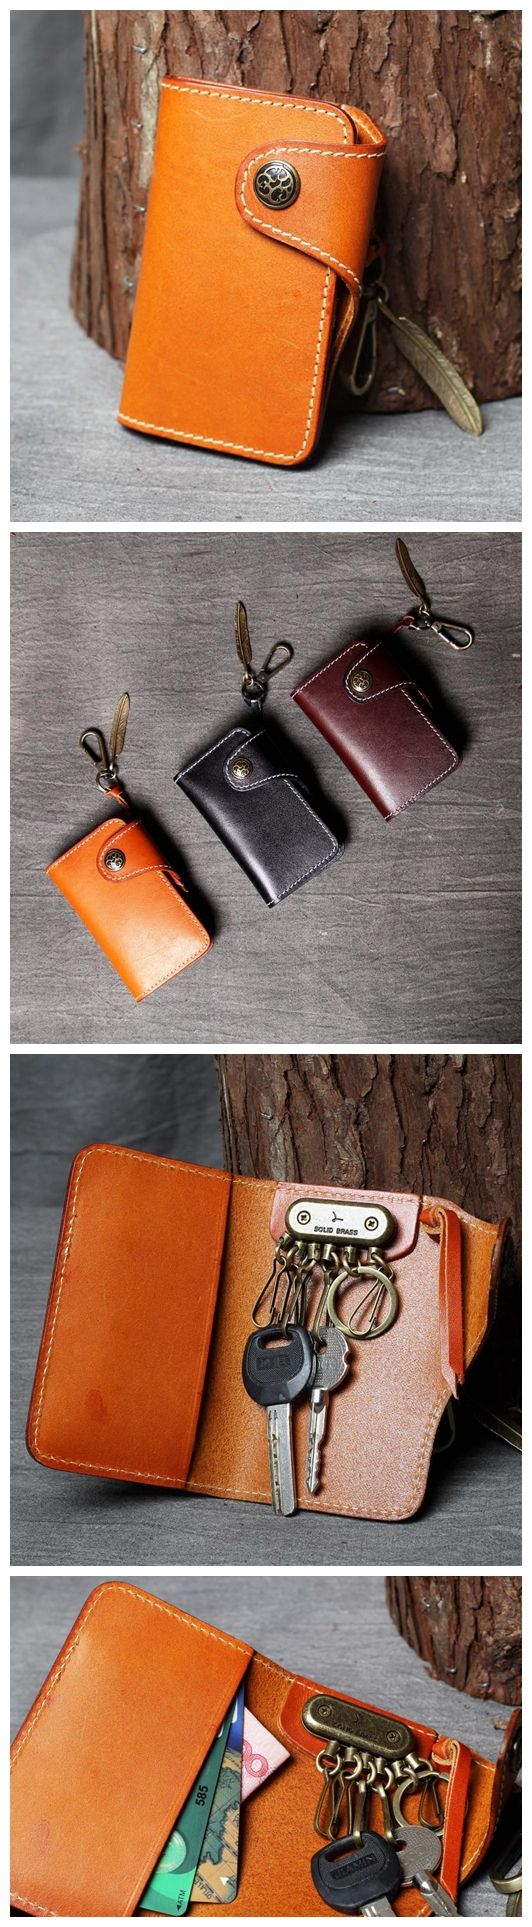 KEY HOLDERS, LEATHER KEY COVER, LEATHER KEY CASE, KEYWALLET, LEATHER KEY HOLDERS